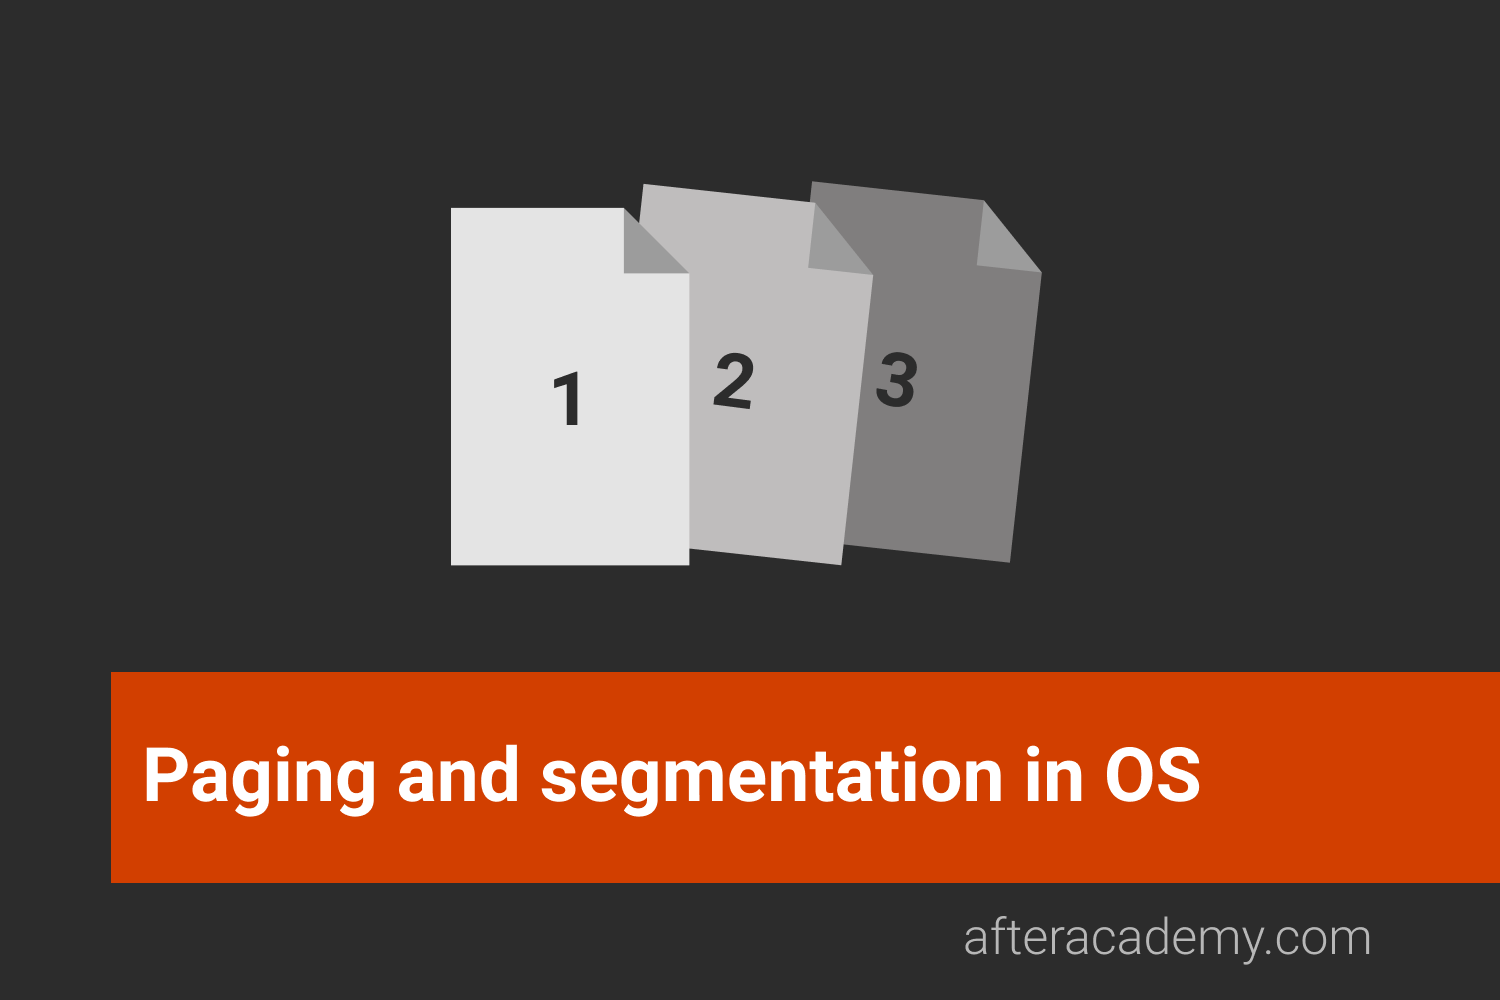 What are Paging and Segmentation?